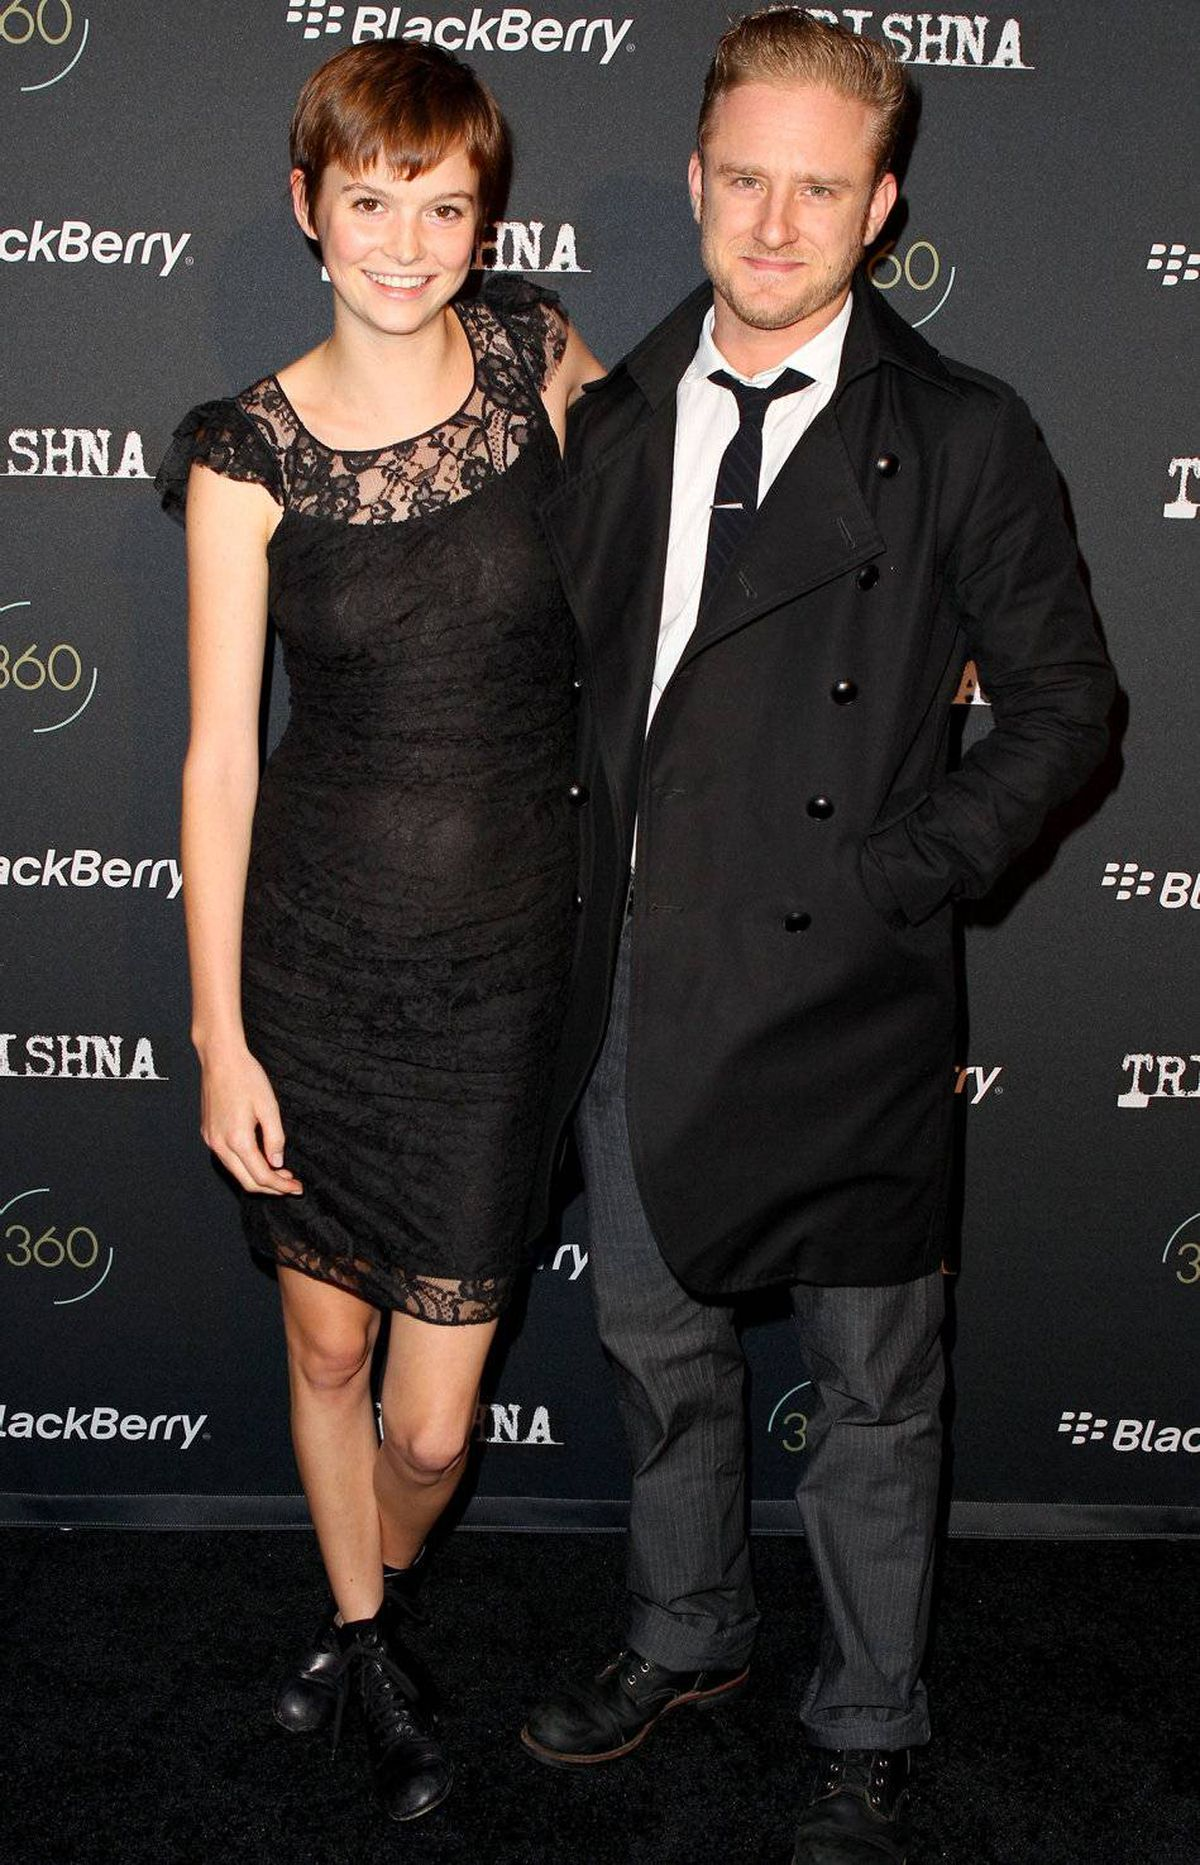 Actor Ben Foster and guest at the BlackBerry Inside Film Lounge at Brassaii on September 9, 2011 in Toronto, Canada.